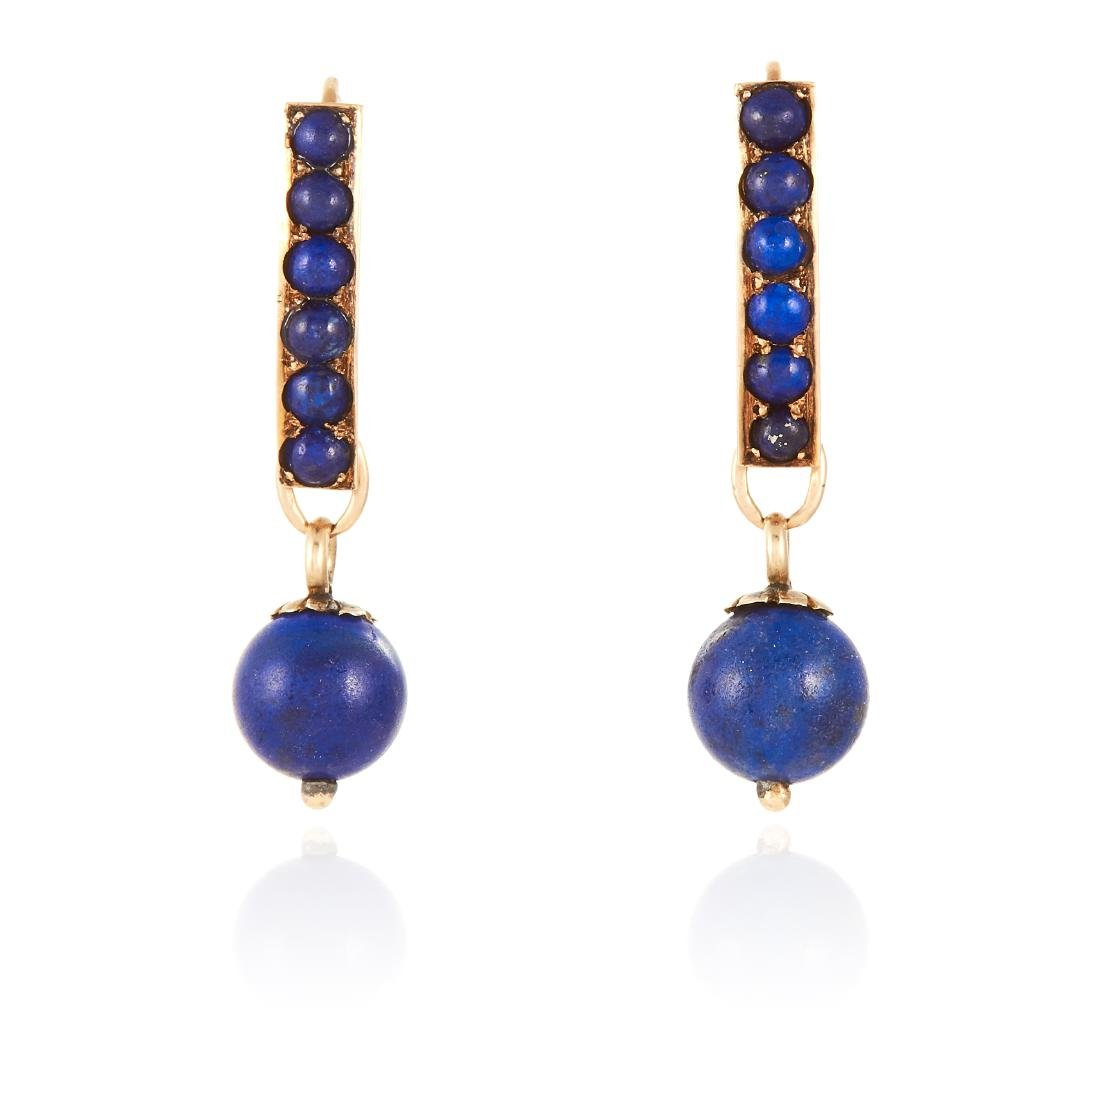 A PAIR OF LAPIS LAZULI EARRINGS in yellow gold, each